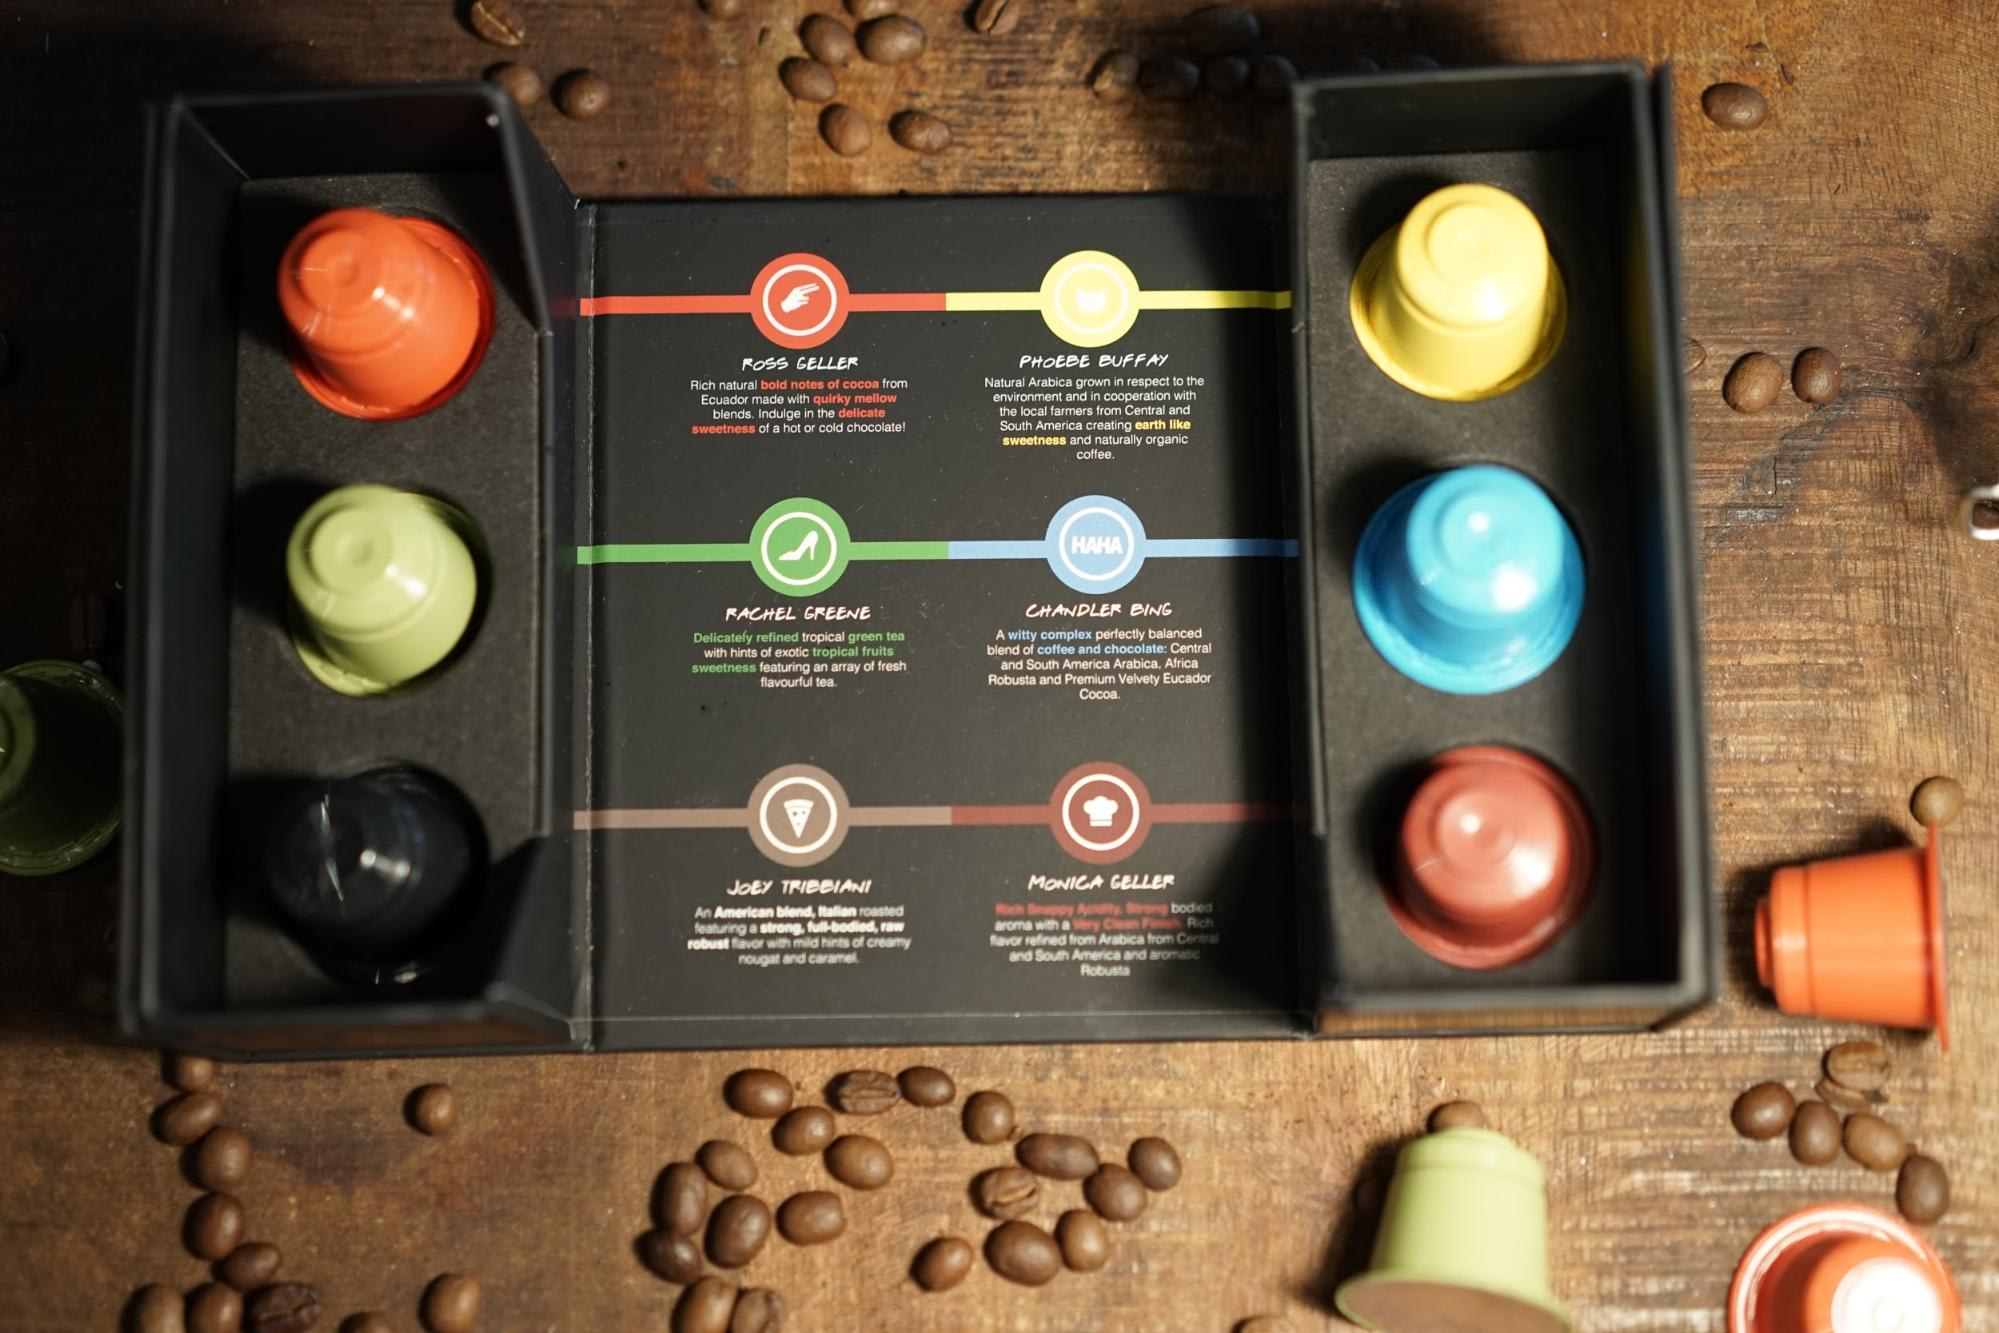 Coffee capsules at Central Perk